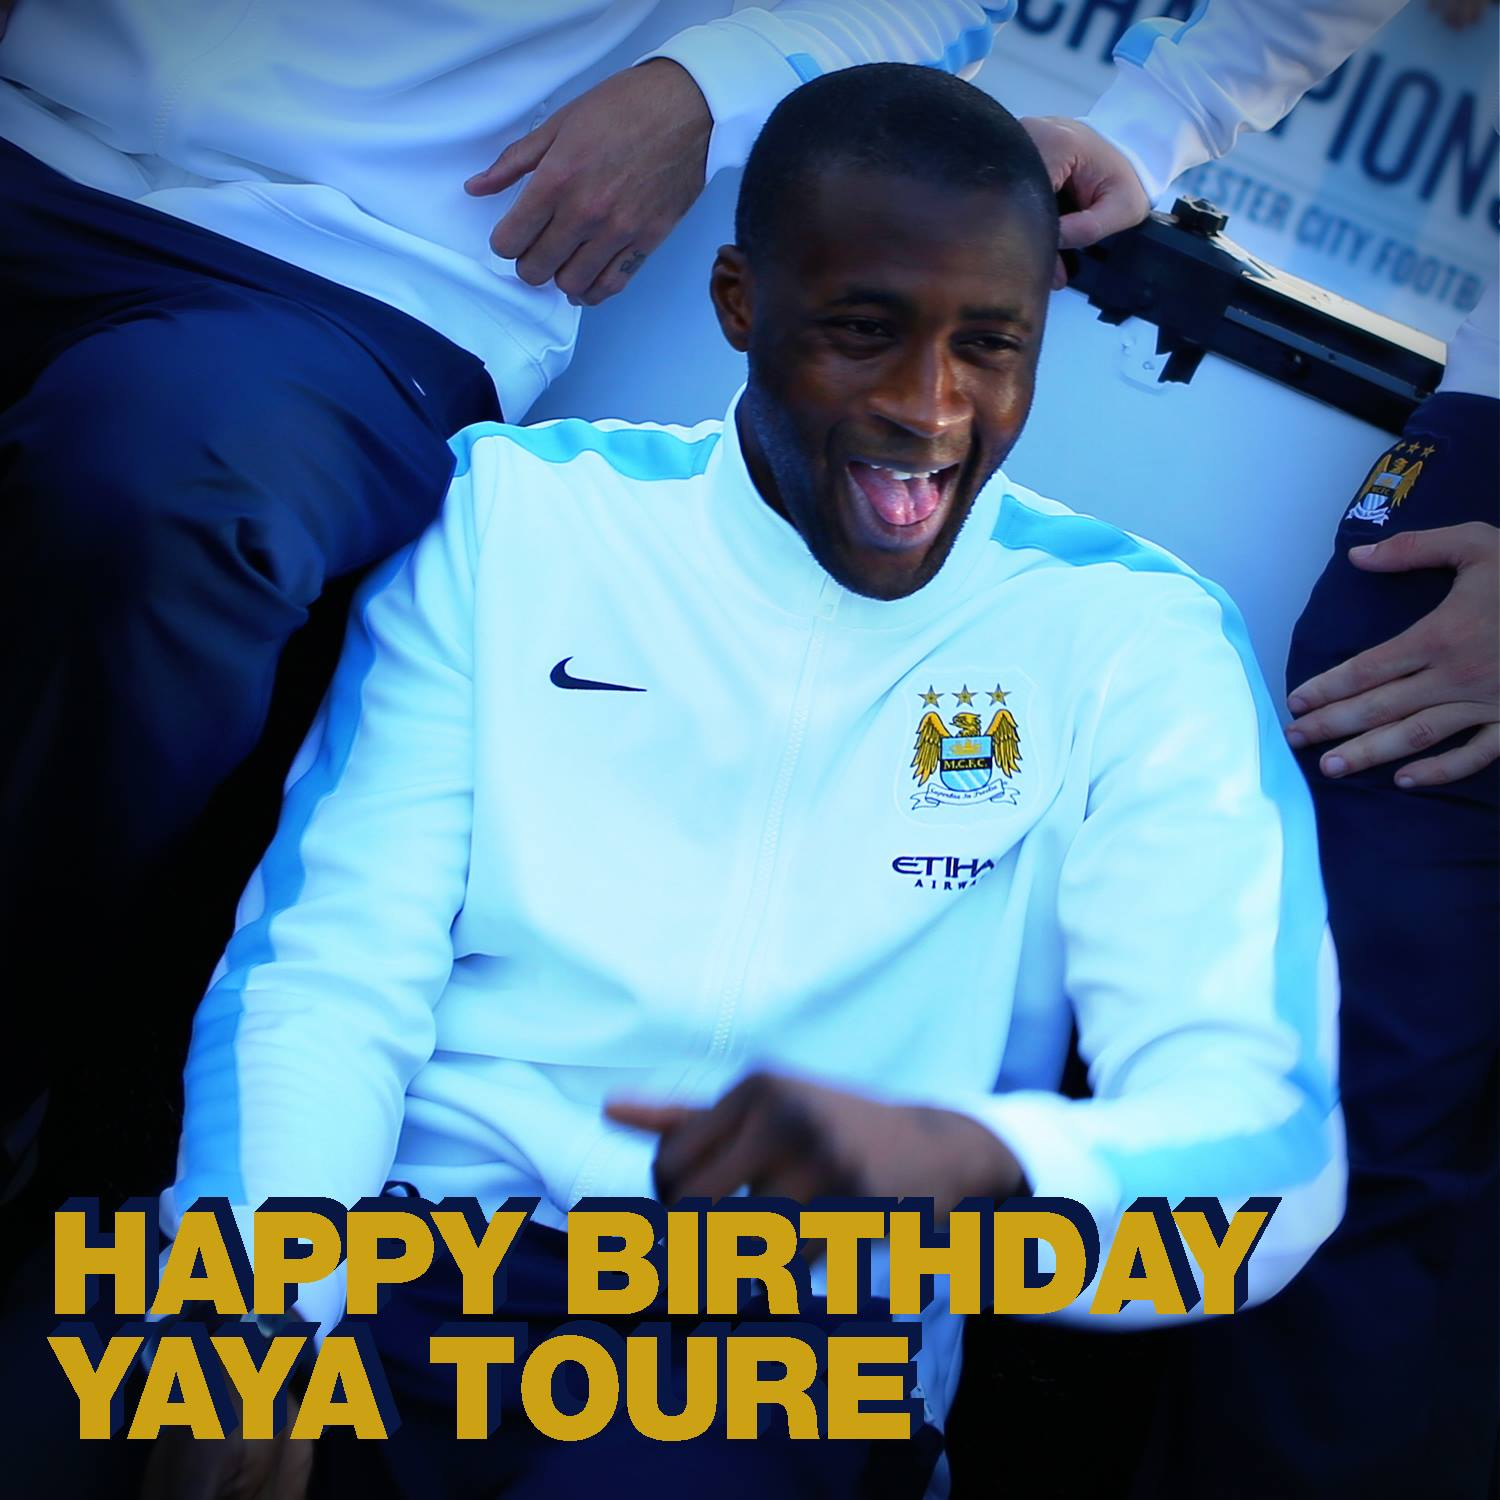 Cakegate - Birthday wishes, handshakes & Bugatti Vayron supercars - Yaya has been making headlines for all the wrong reasons. Courtesy @MCFC